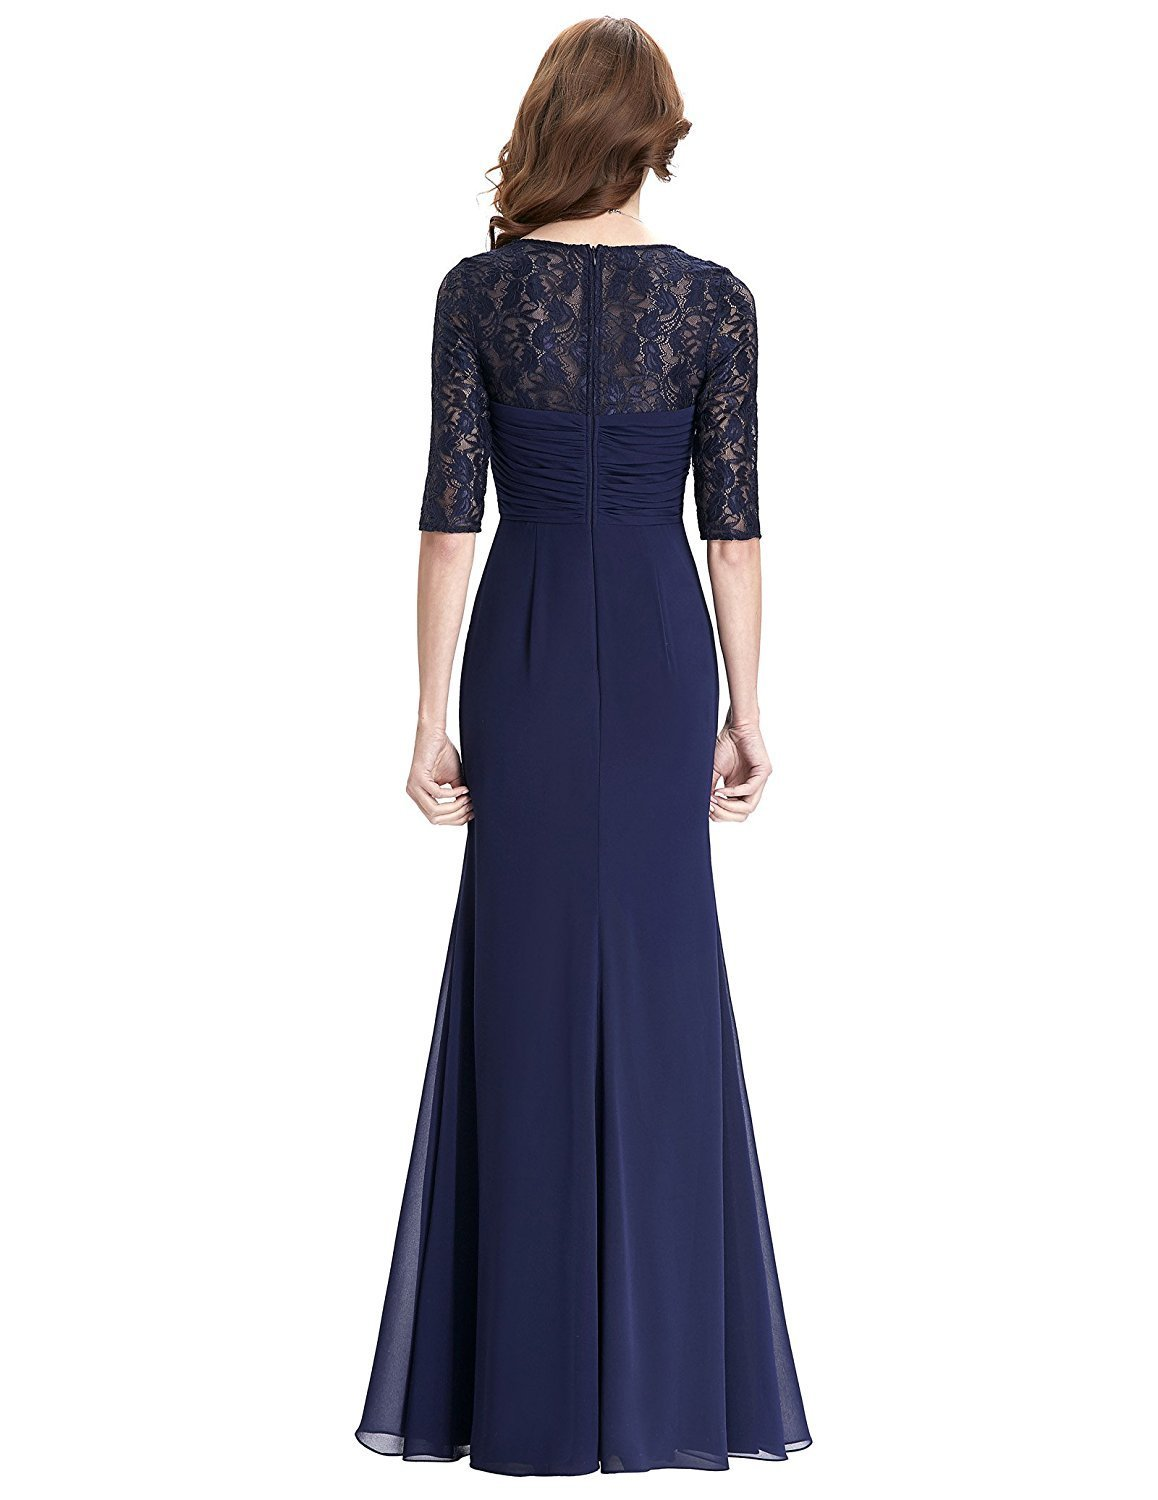 Chiffon 1/2 Sleeve Long Wedding Evening Prom Dress Navy Blue Mother of the Bride